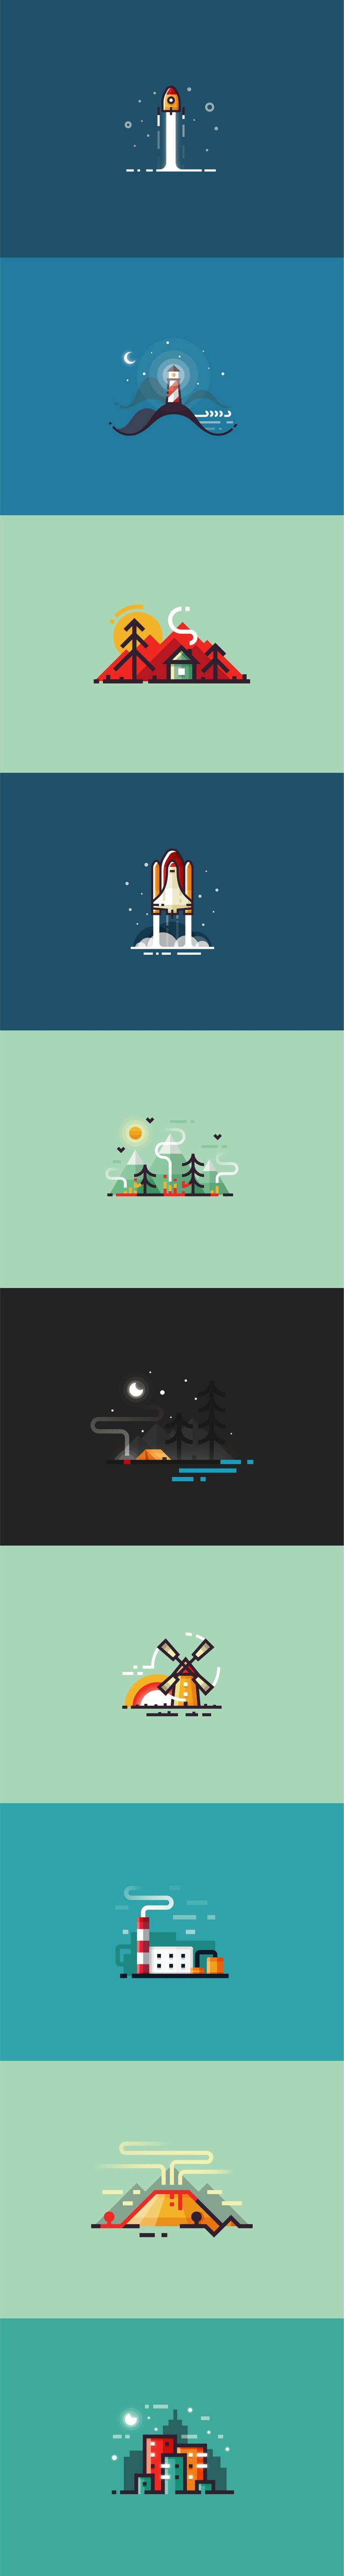 Only high-quality illustrations are included in this set. This collection of pictogrames are made in a unique style with high level of accuracy. Graphic elements can be used as an infographic icons to visualize your data. As you've noticed my new collecti…